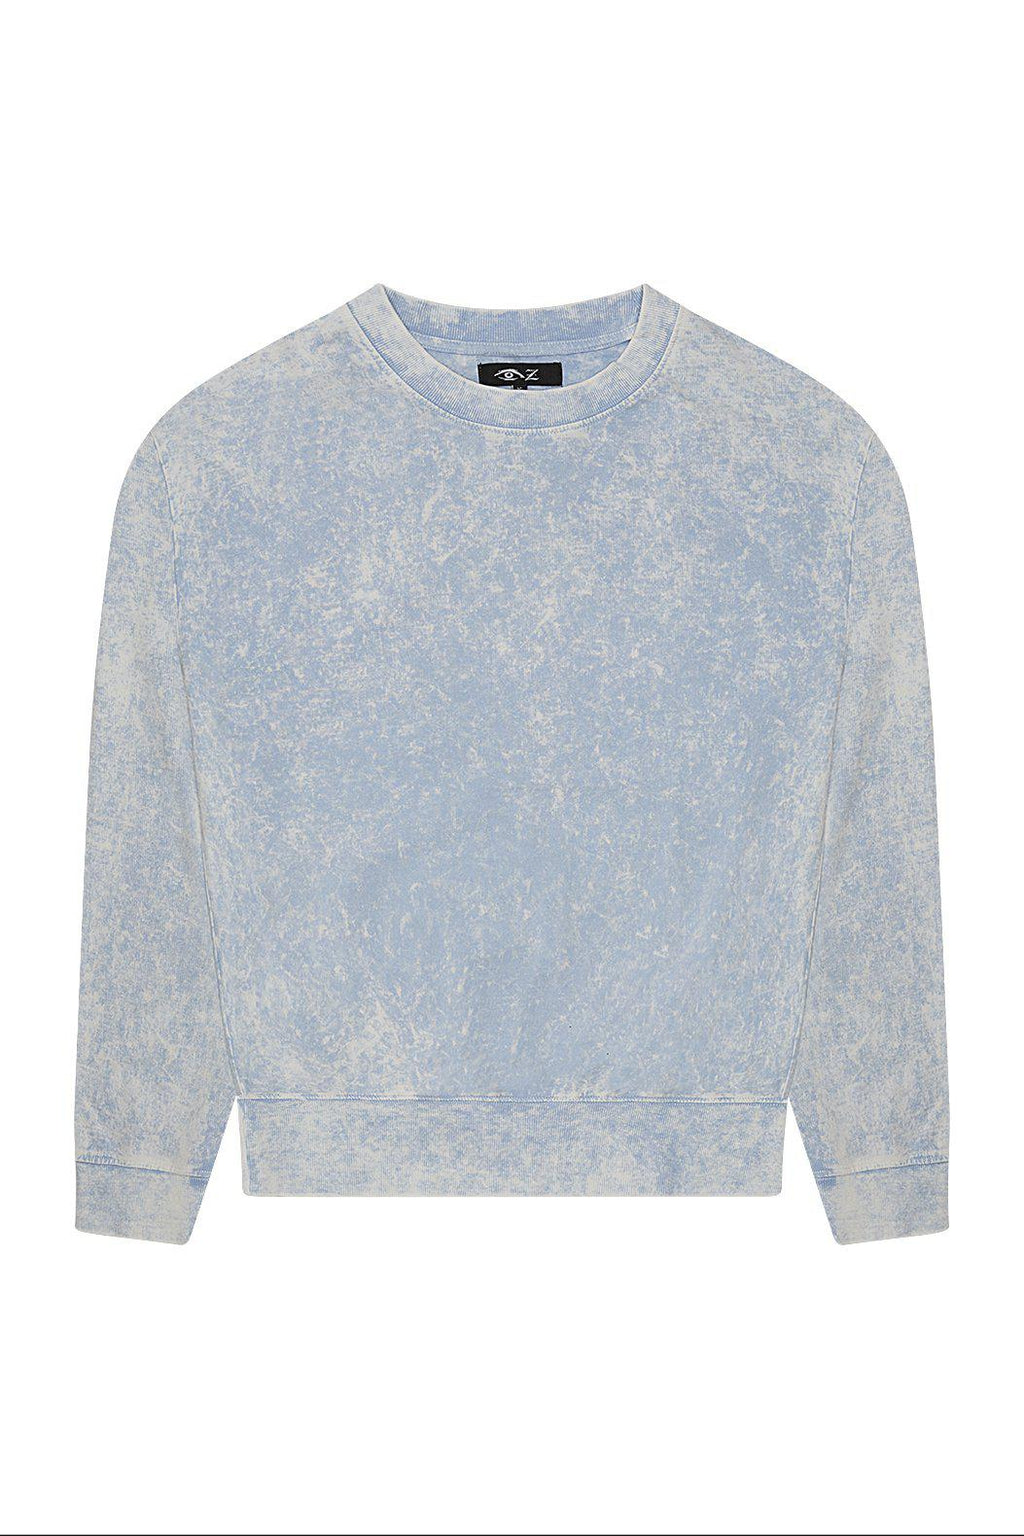 Boys Blue Stone Wash Light Sweatshirt